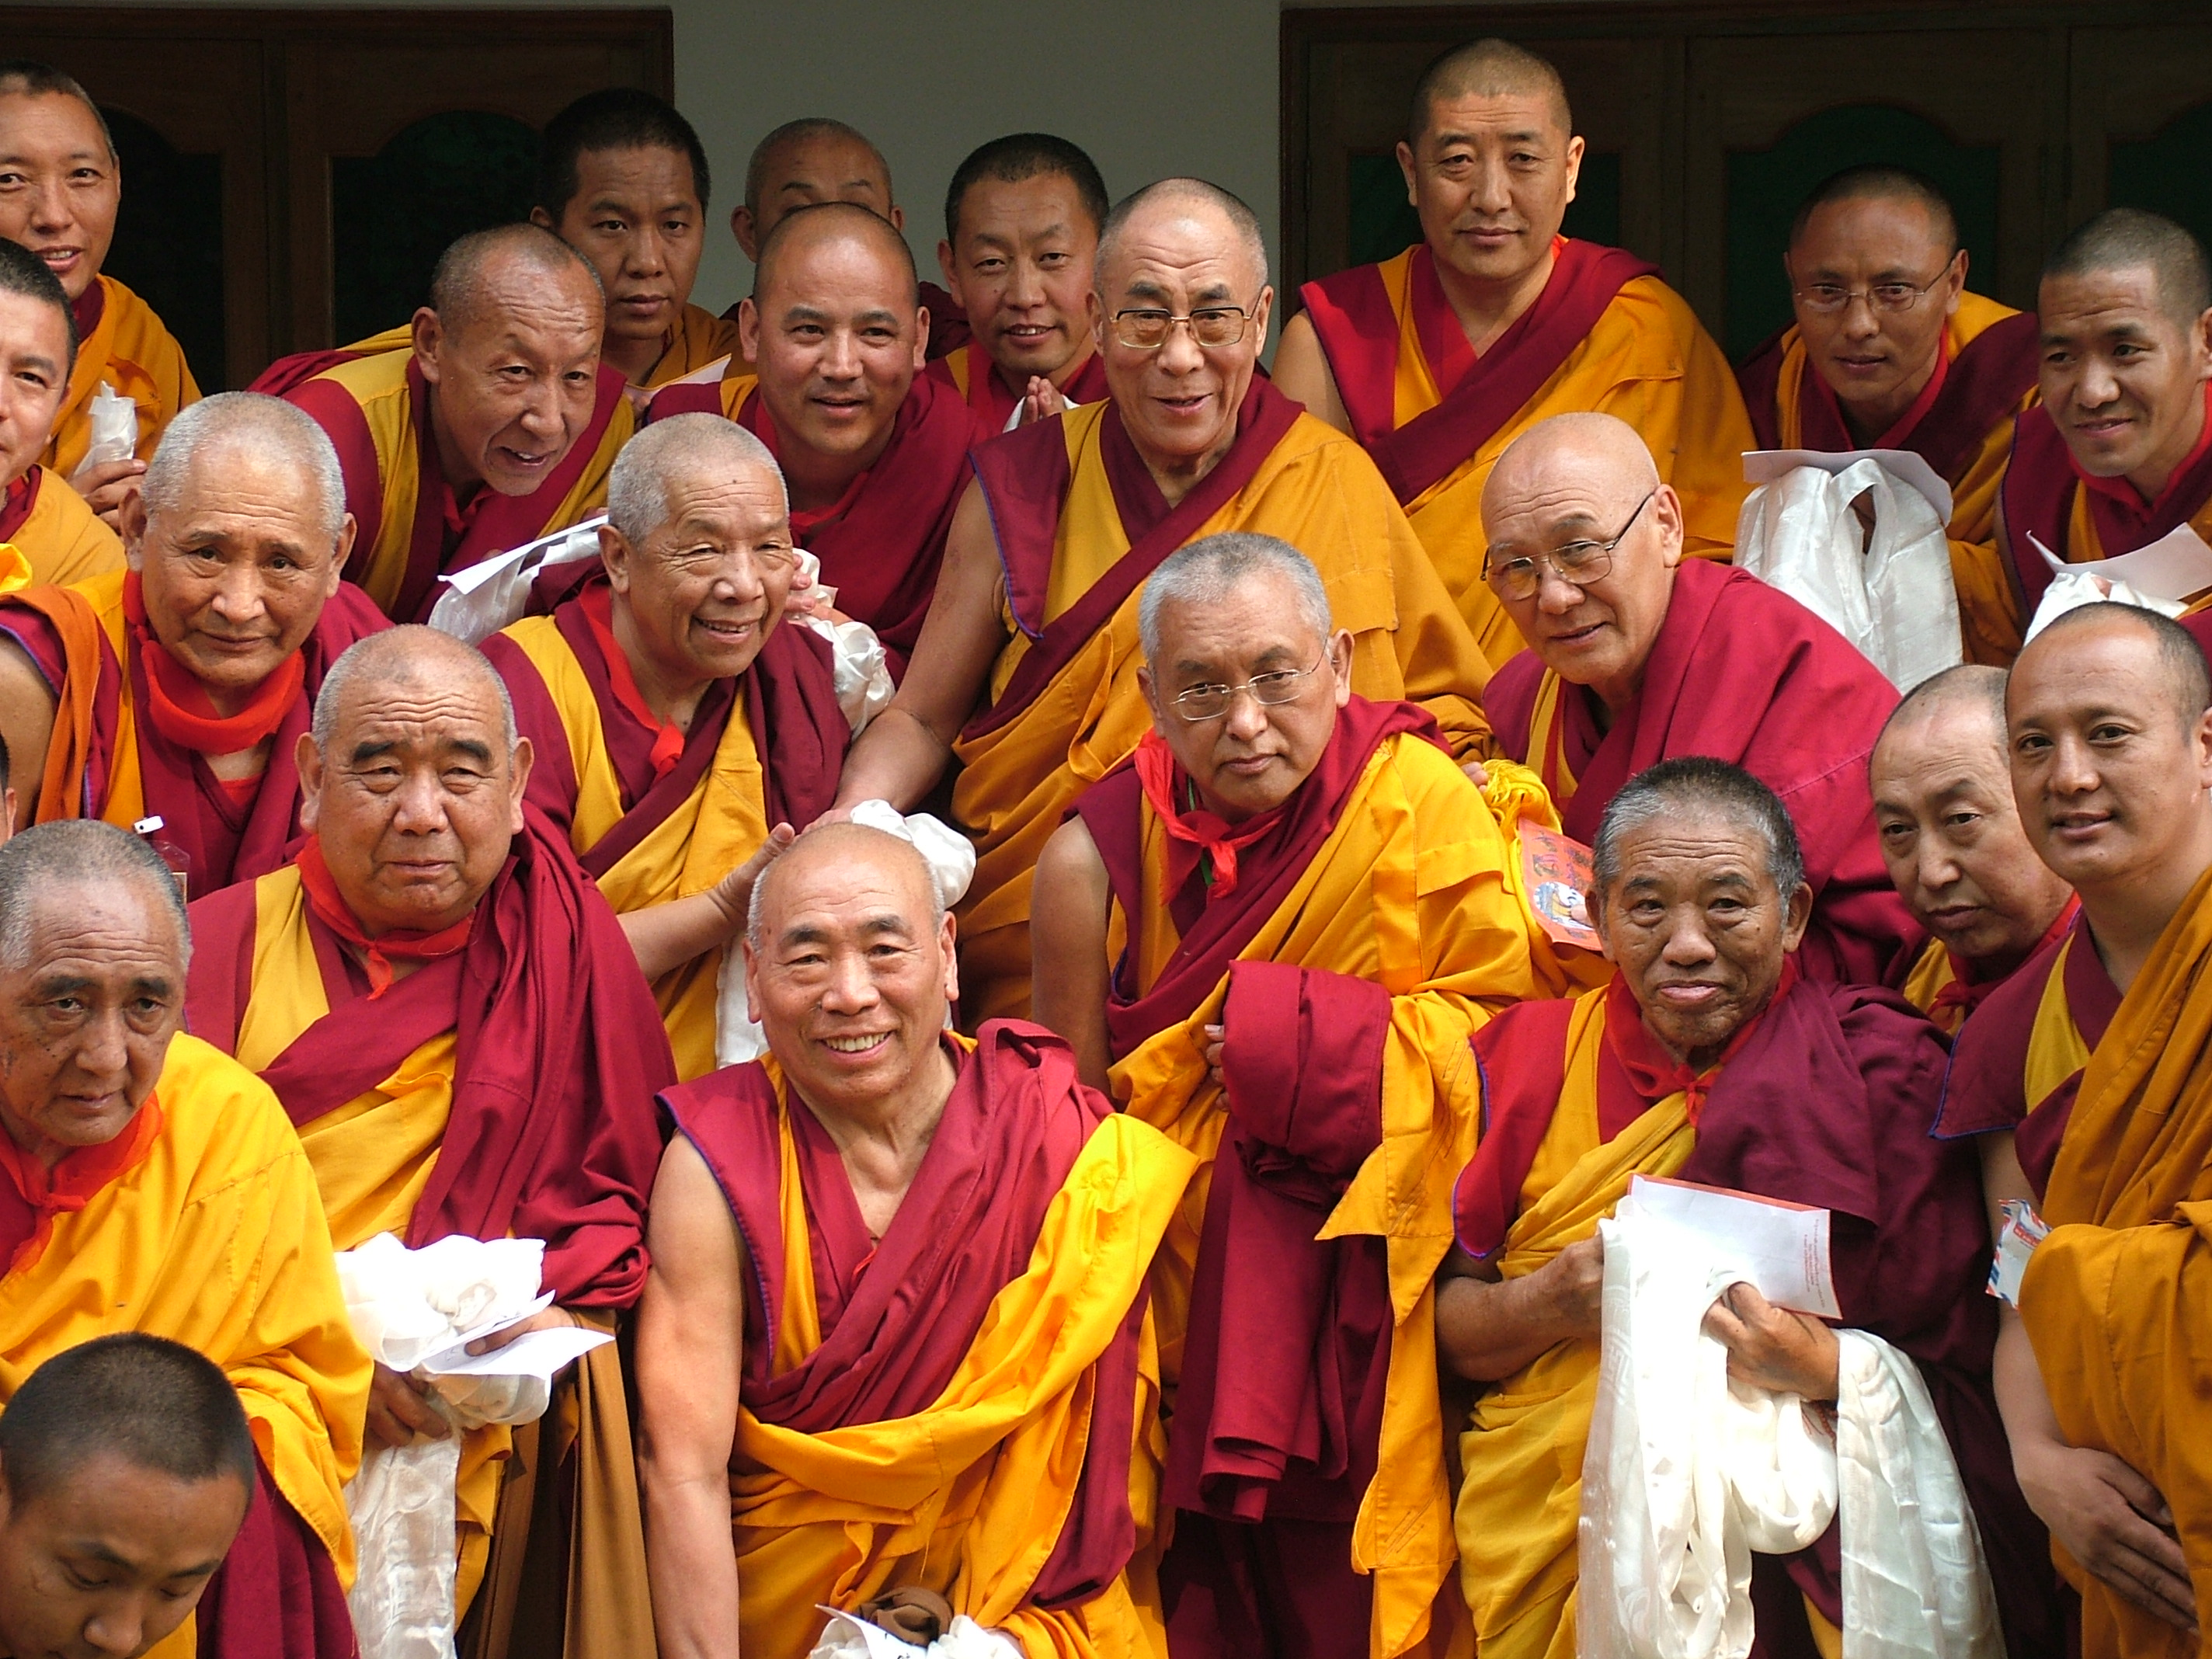 Lama Zopa Rinpoche and FPMT Geshes at aconference in Sarnath in2006 to attendteachings, offer a long life puja to His Holiness the Dalai Lamaand discuss issues relating to bringing the Dharma to the West. Many of the older geshes studied at Buxa with Lama Zopa Rinpoche and Lama Yeshe. (PhotoVen Roger Kunsang)